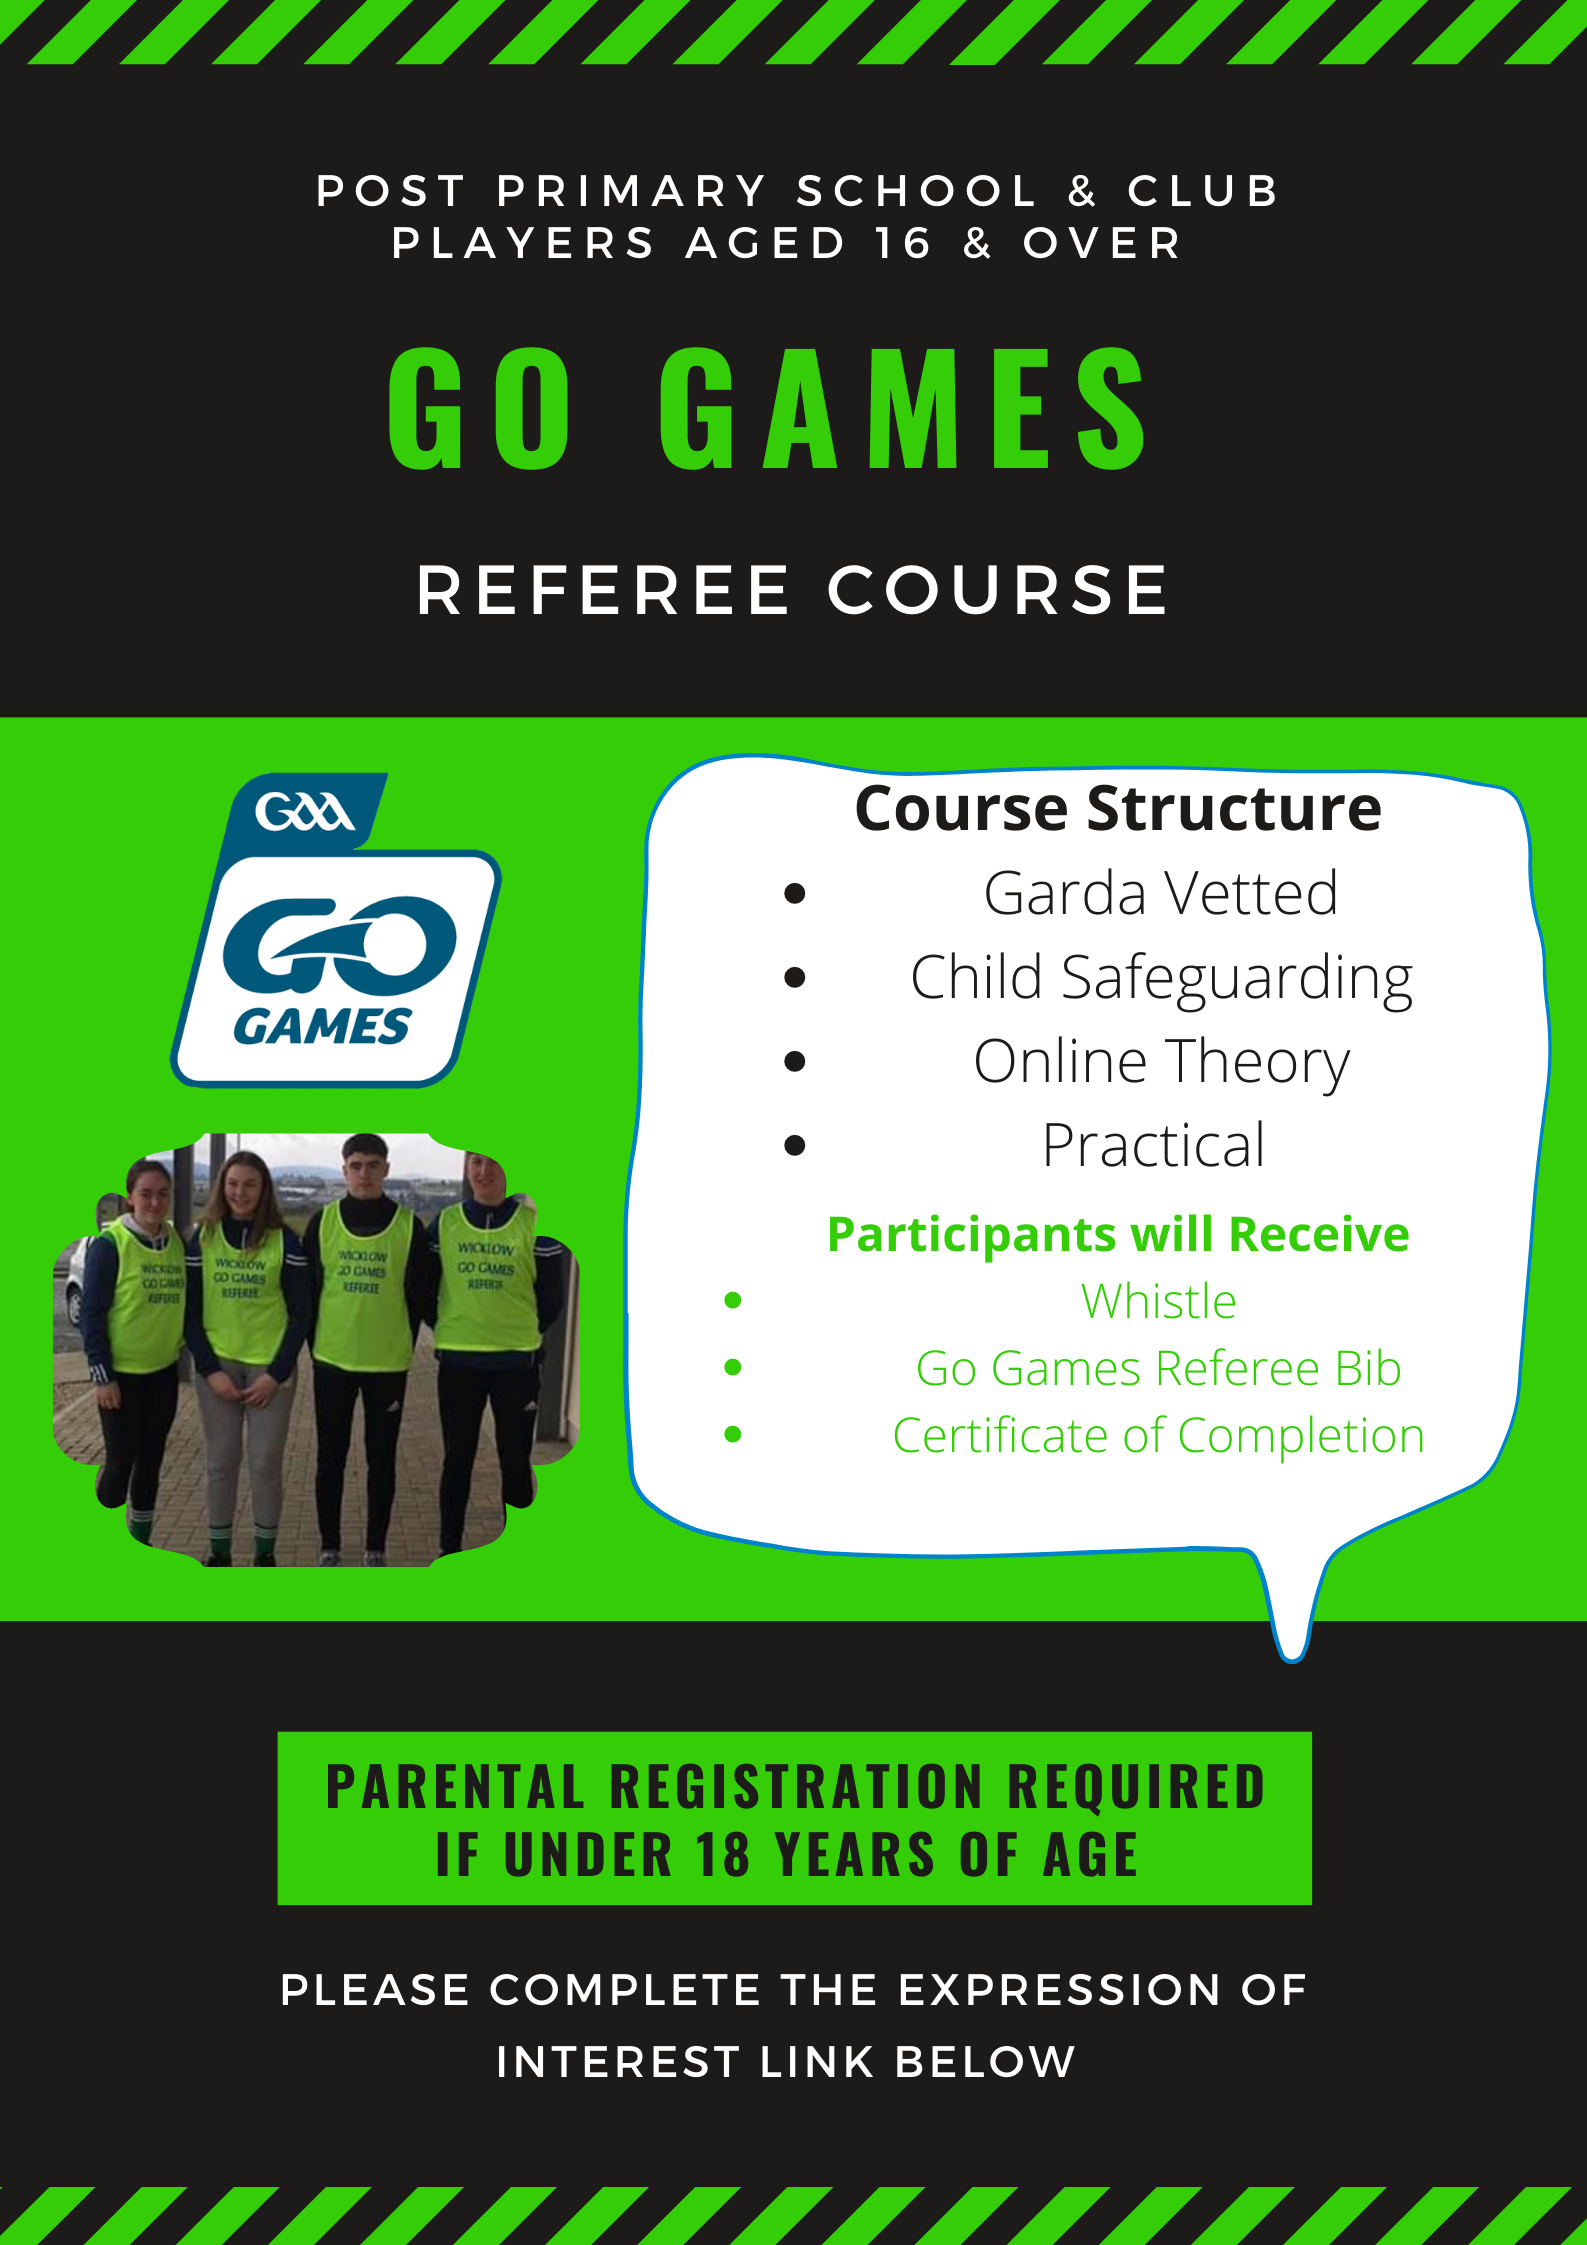 Go Games Referee Course 2021